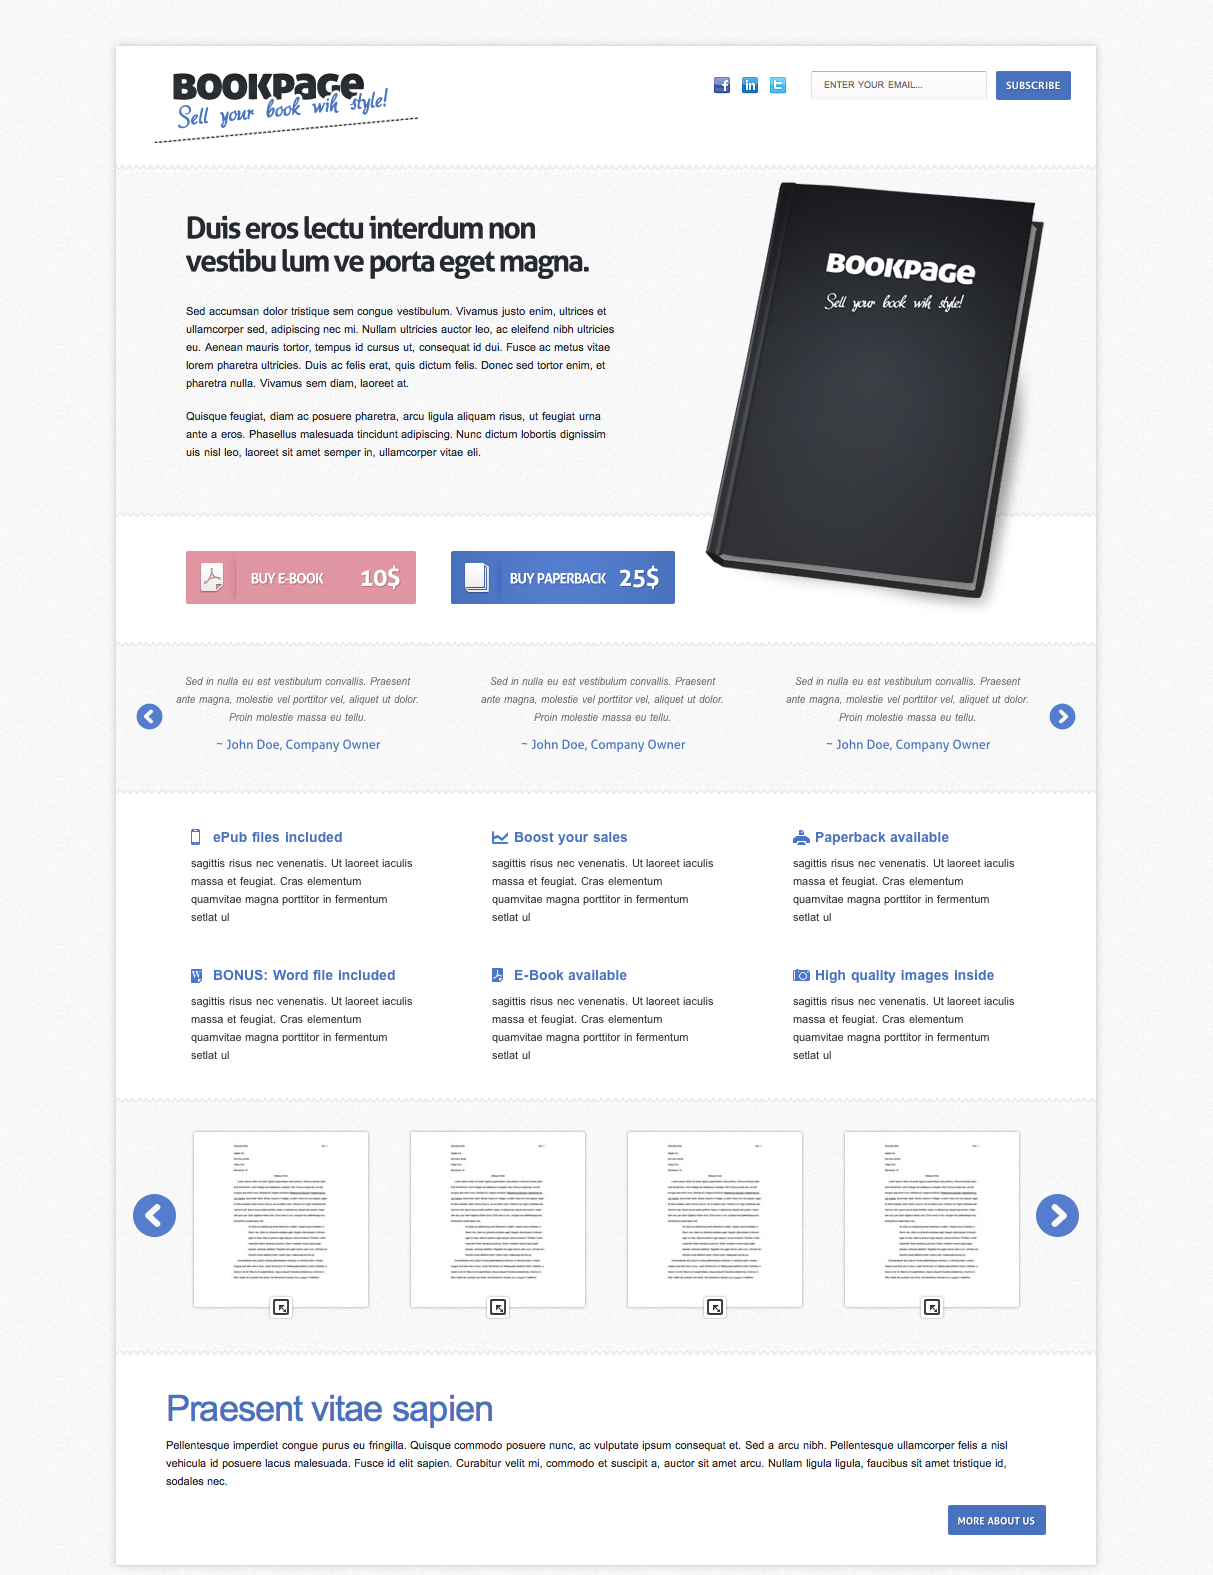 BookPage - Sell your books with Style!